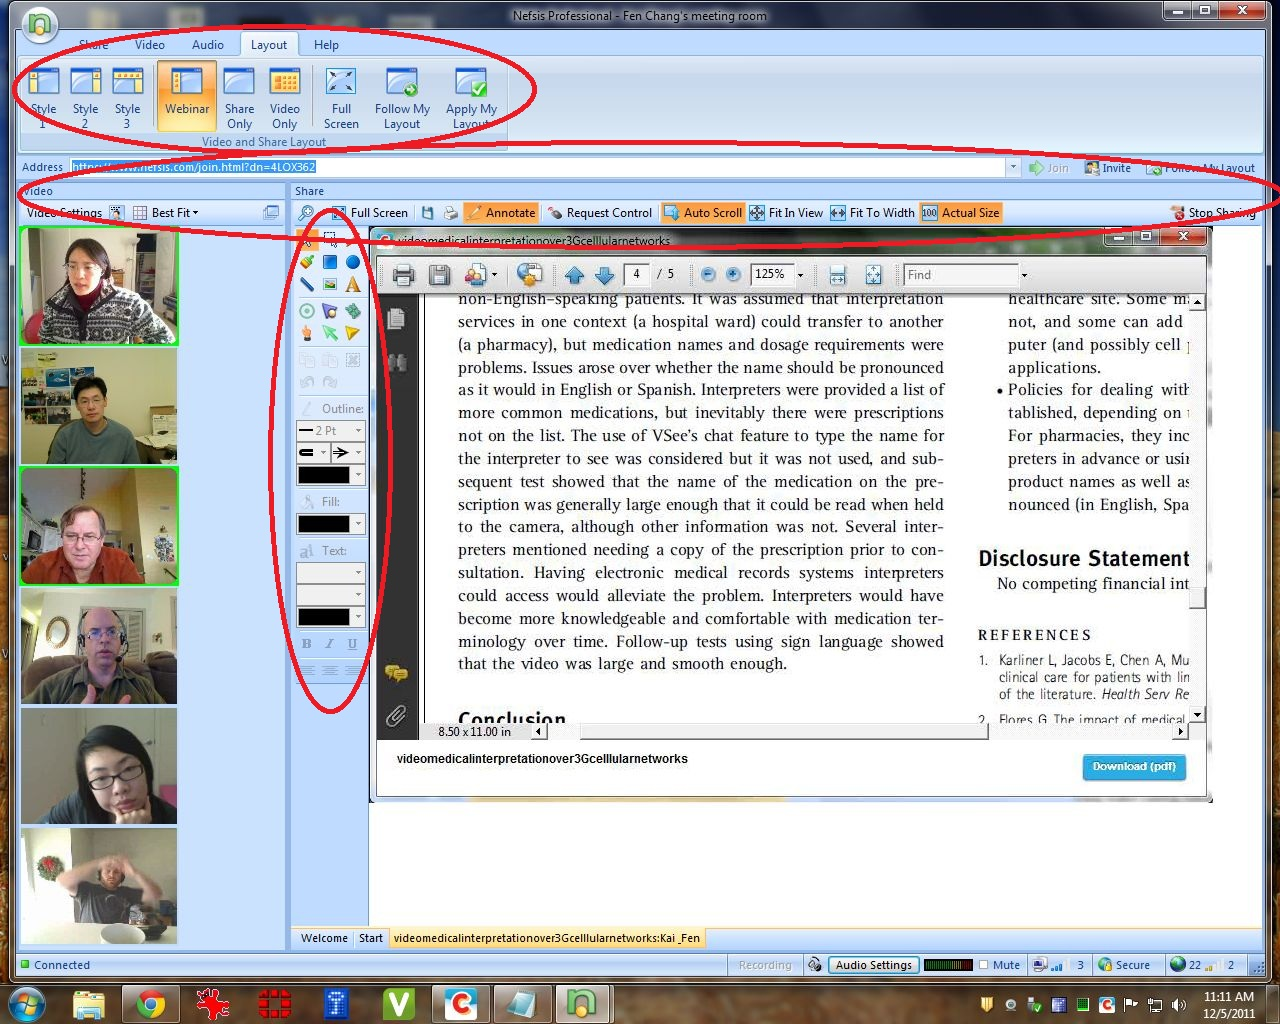 Nefsis video conference screenshot